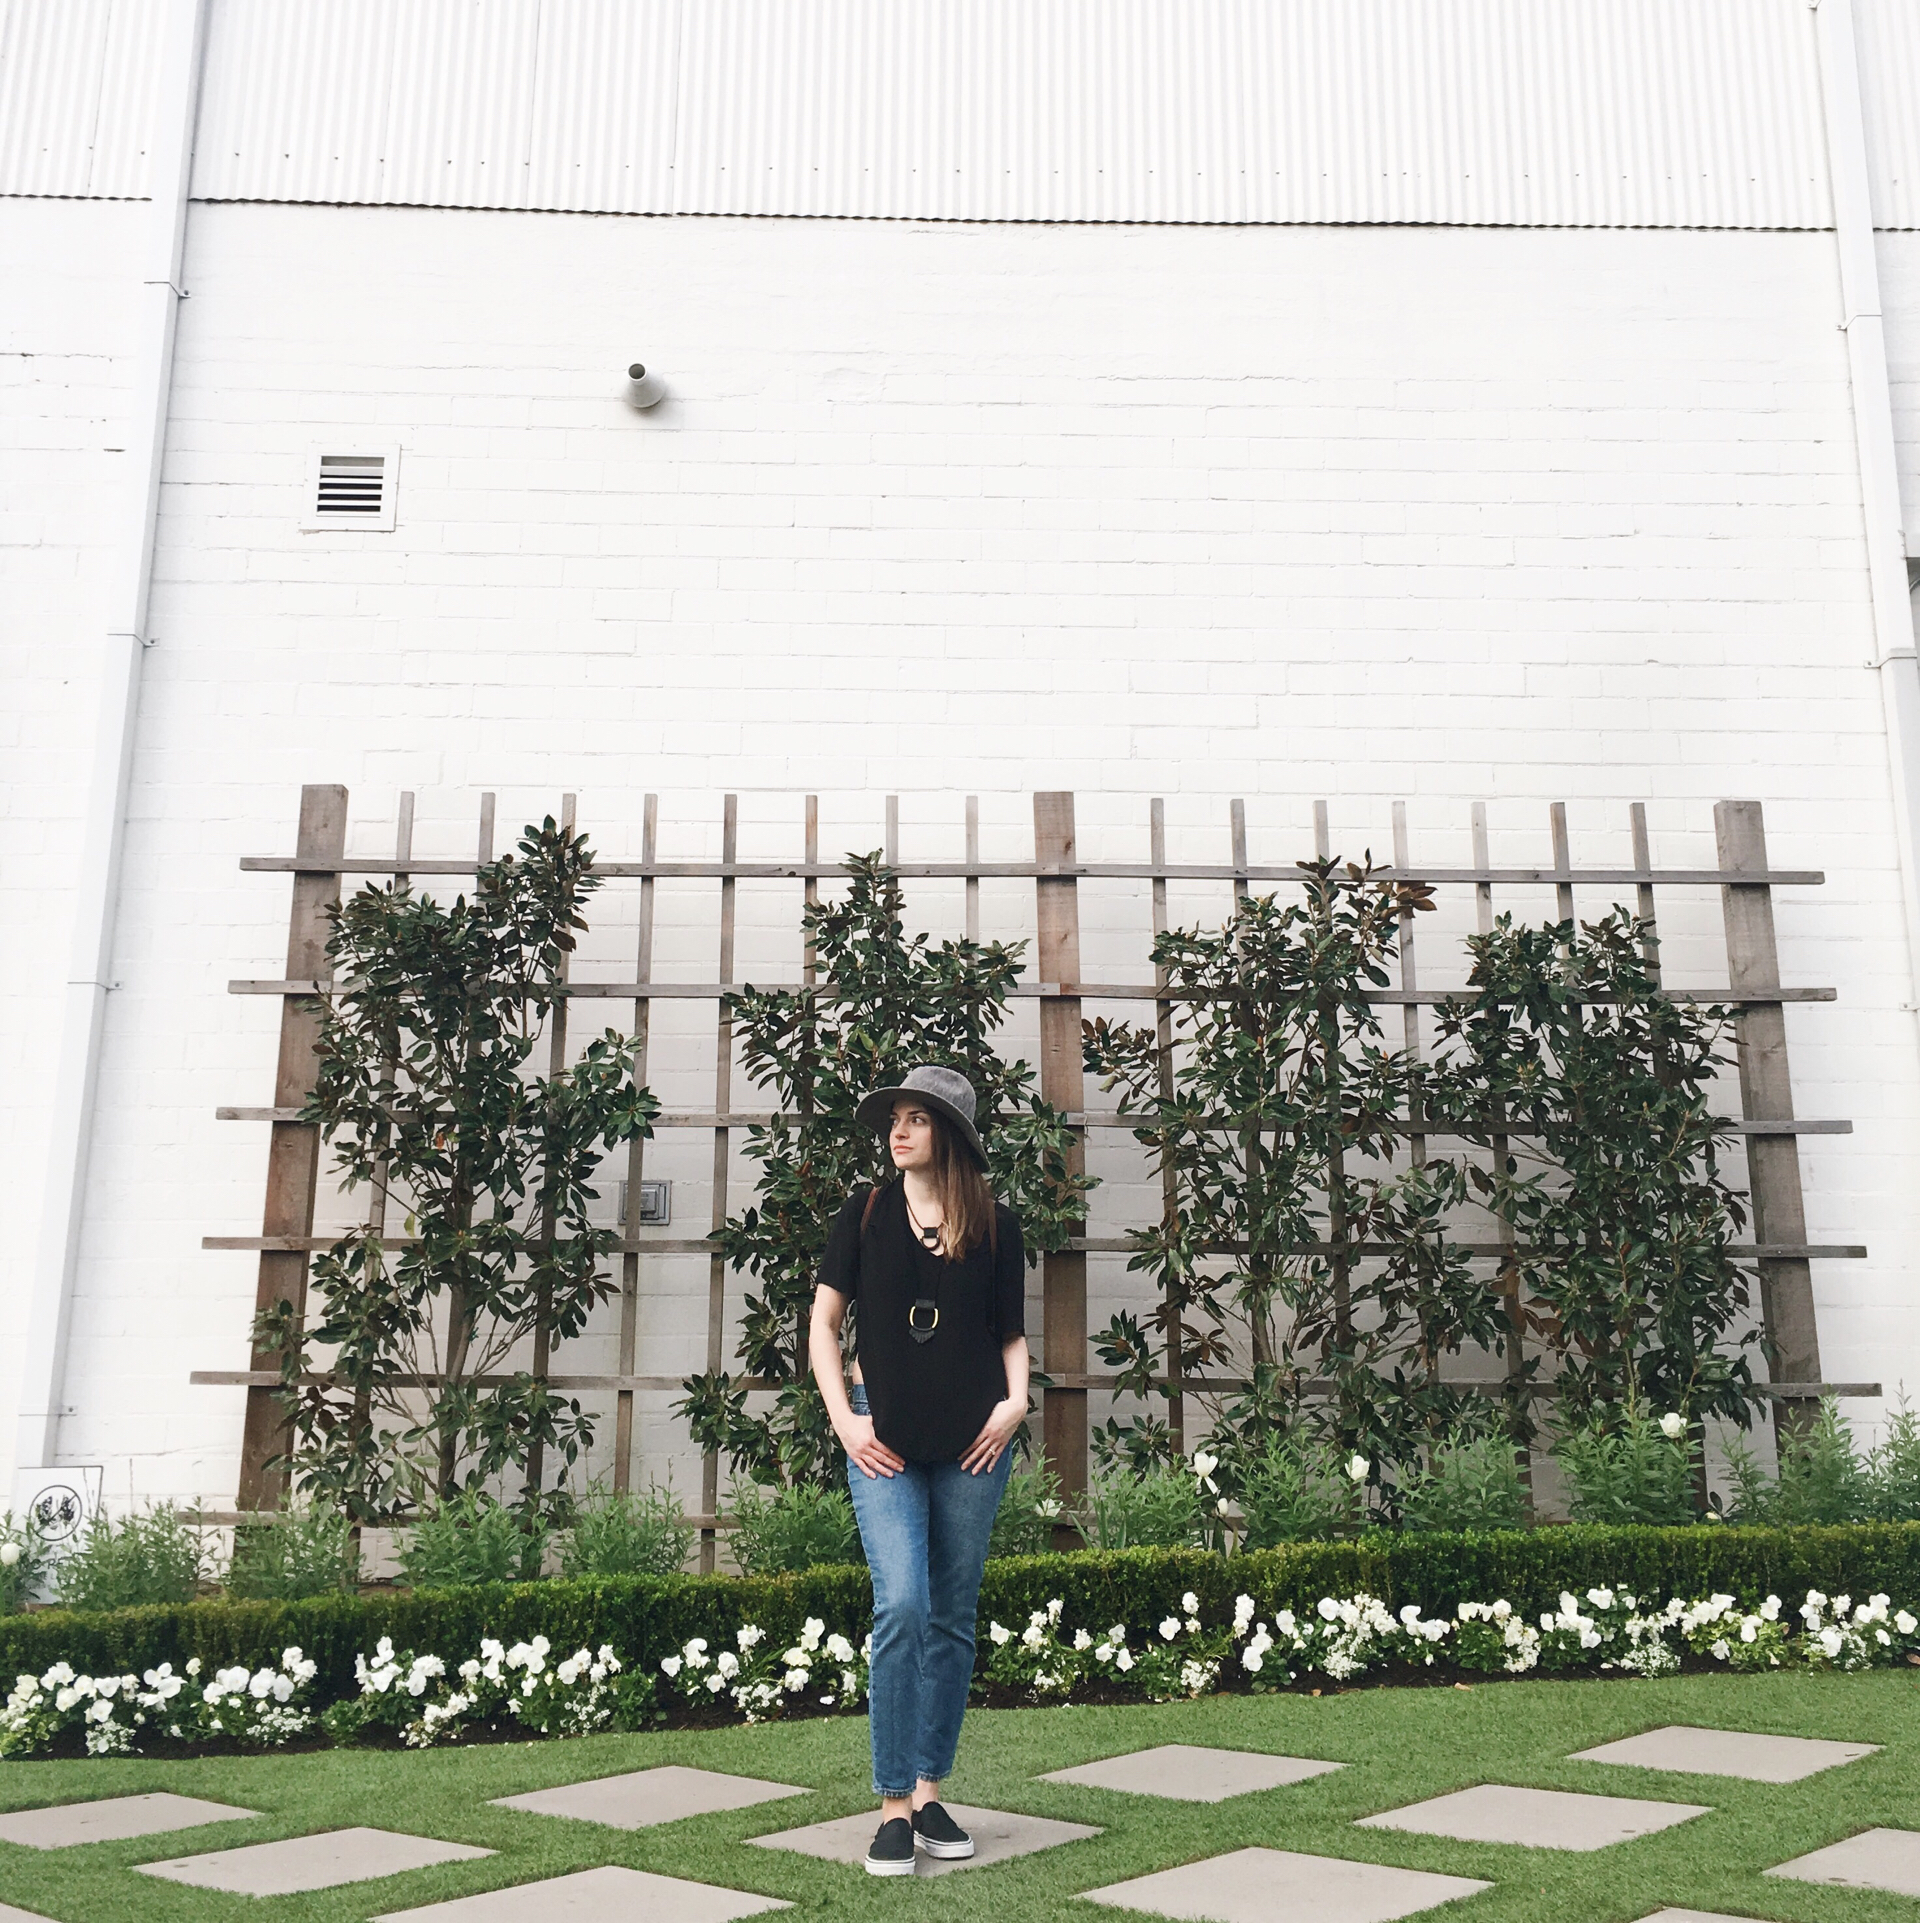 One of the rare opportunities I found to snap a photo at the entrance of Magnolia Silos while it was empty.